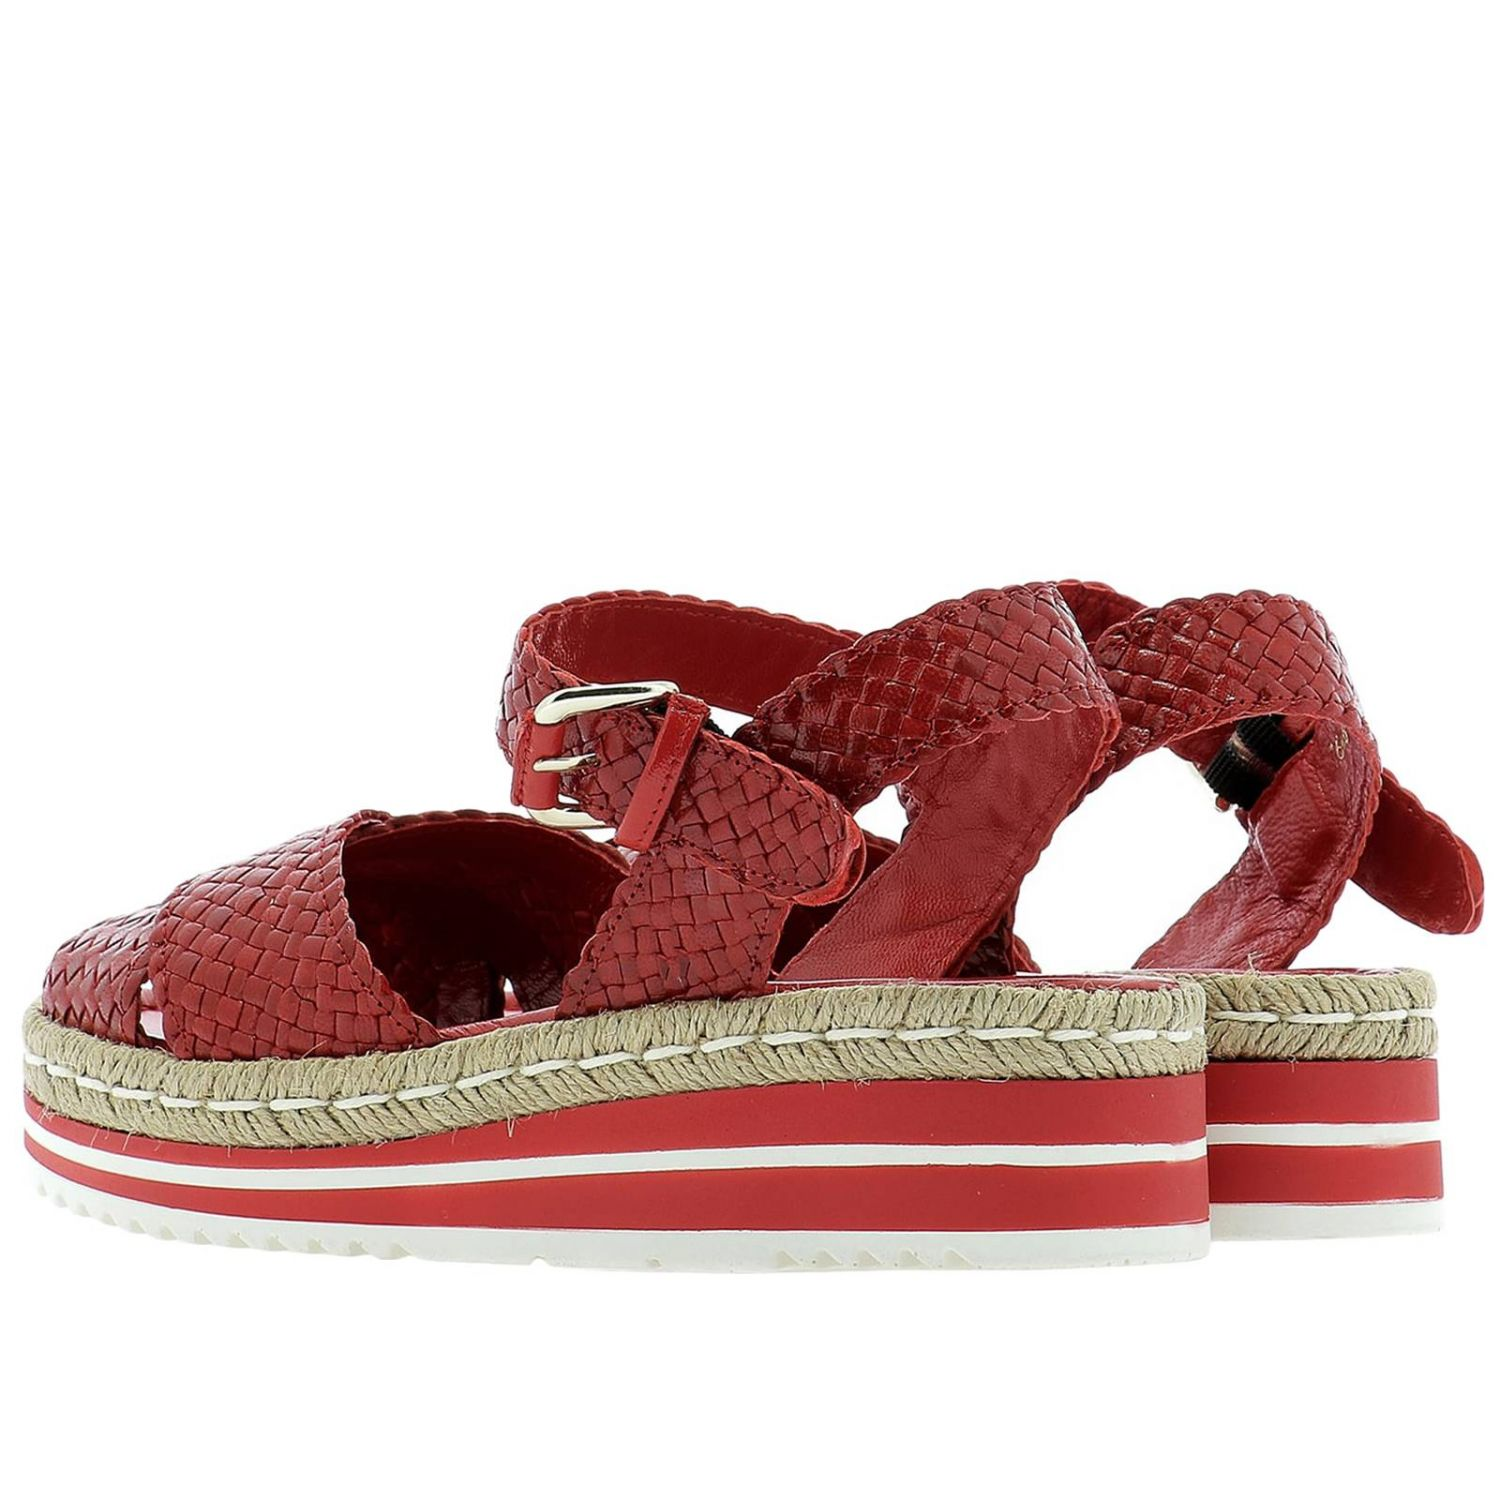 Shoes women Pons Quintana red 3